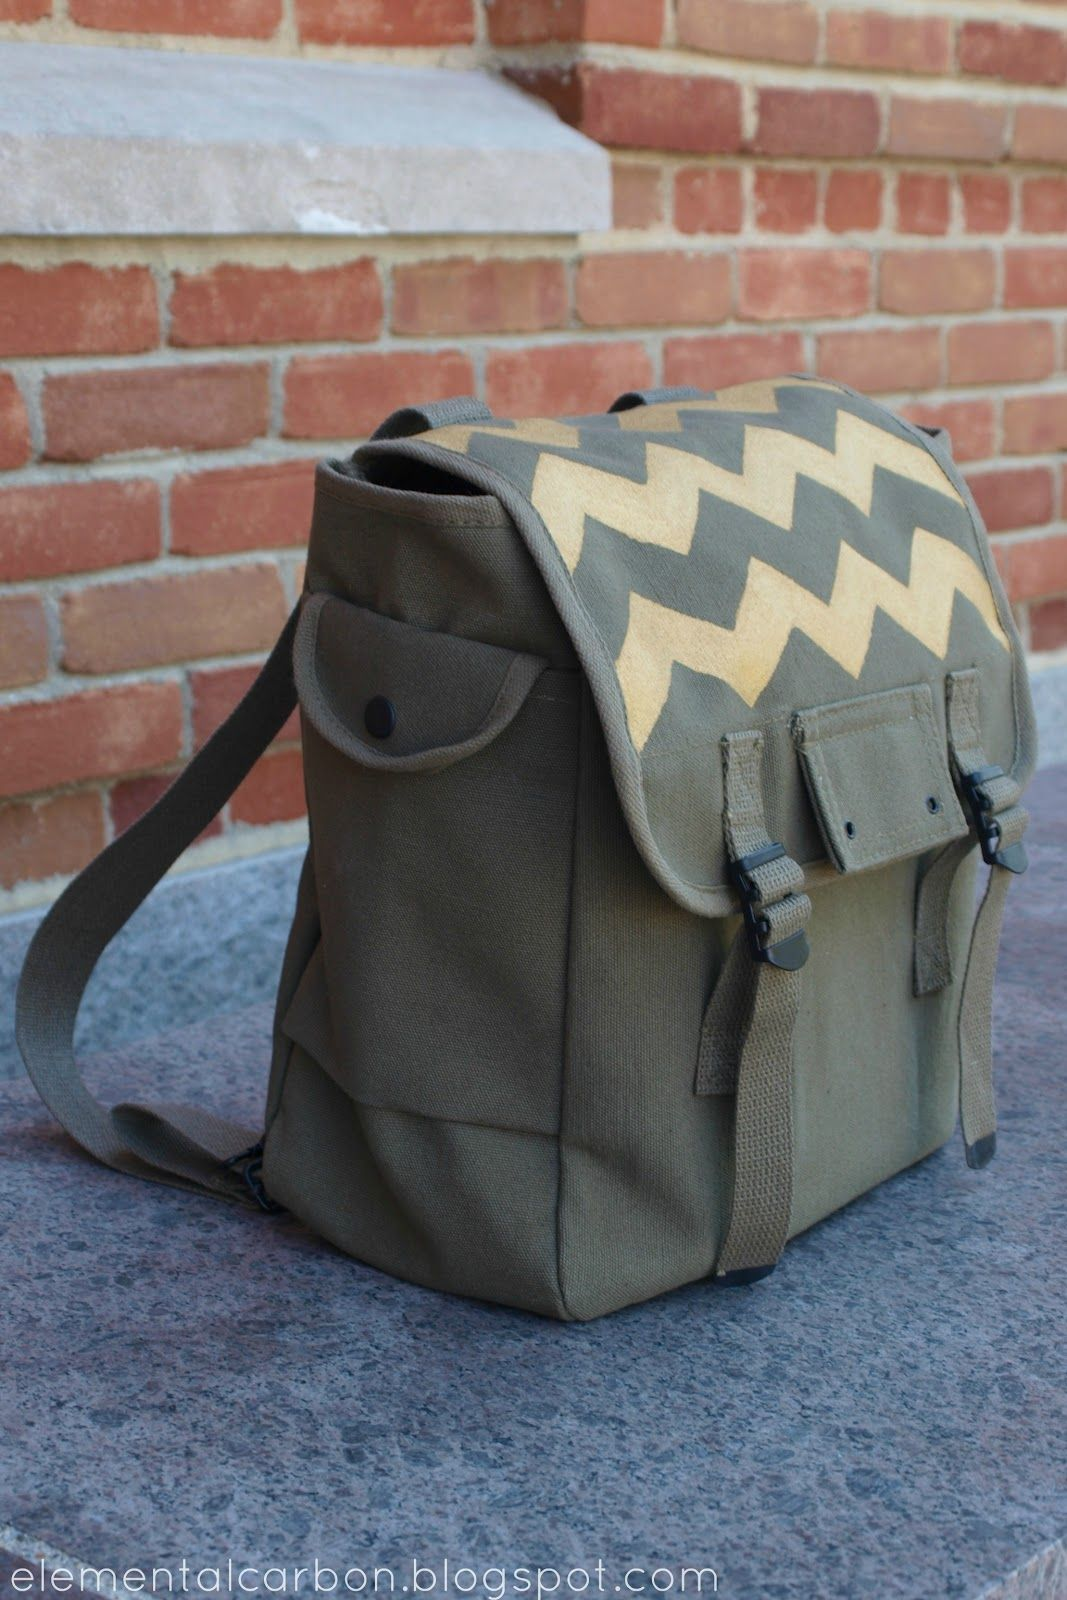 Elemental Carbon Gold Chevron Army Backpack Diy Diy Backpack Pattern Backpack Pattern Diy Backpack